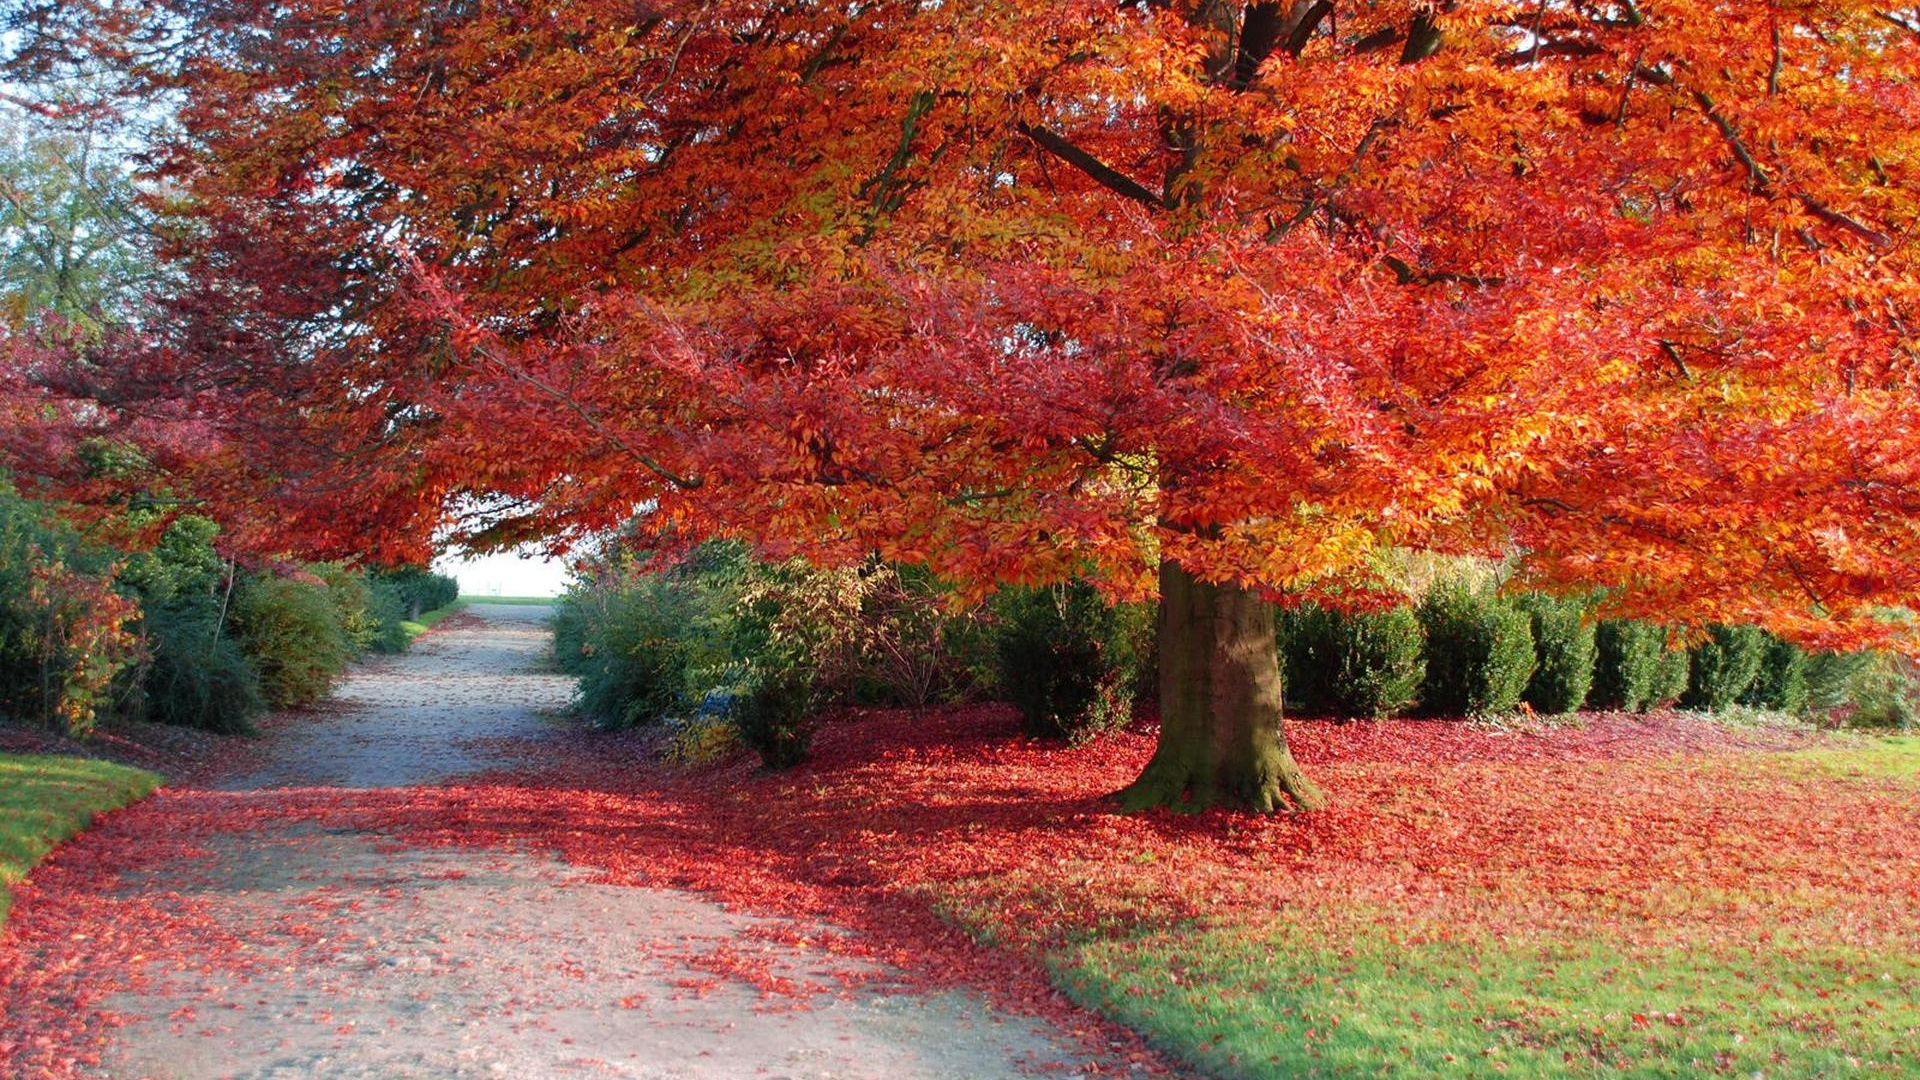 31938 download wallpaper Landscape, Trees, Autumn screensavers and pictures for free